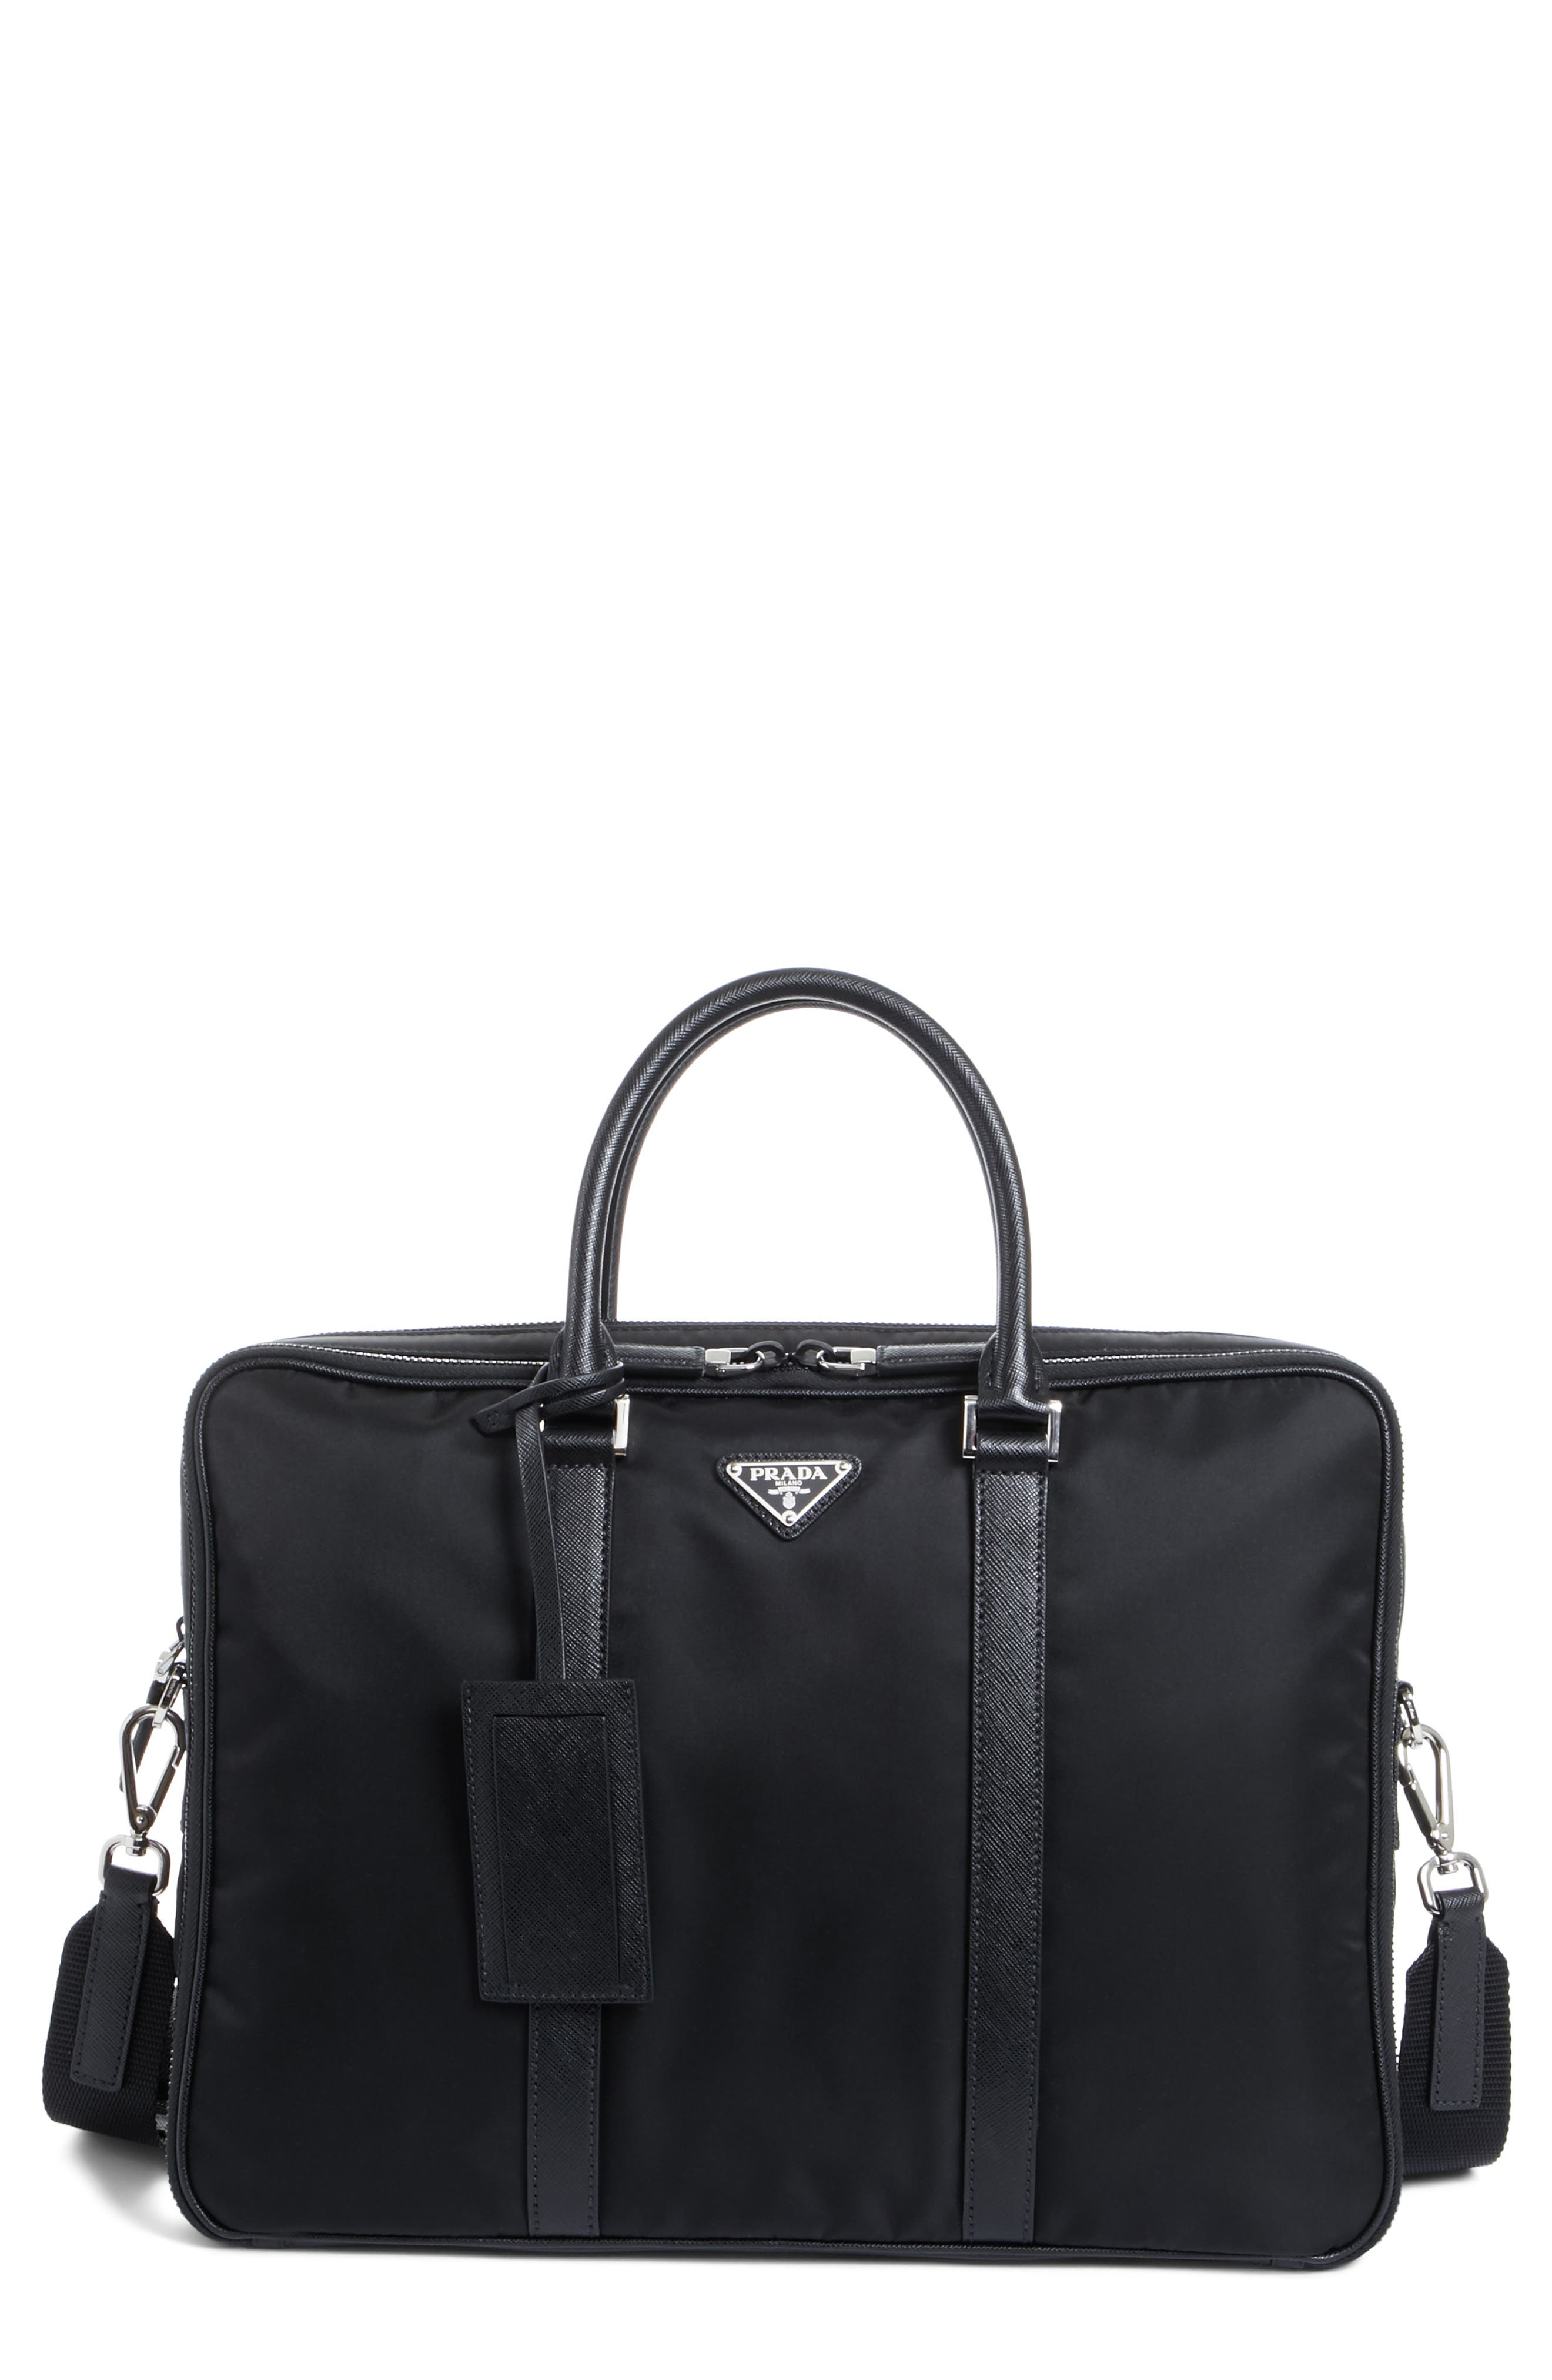 PRADA, Nylon Briefcase with Saffiano Leather Trim, Main thumbnail 1, color, 001